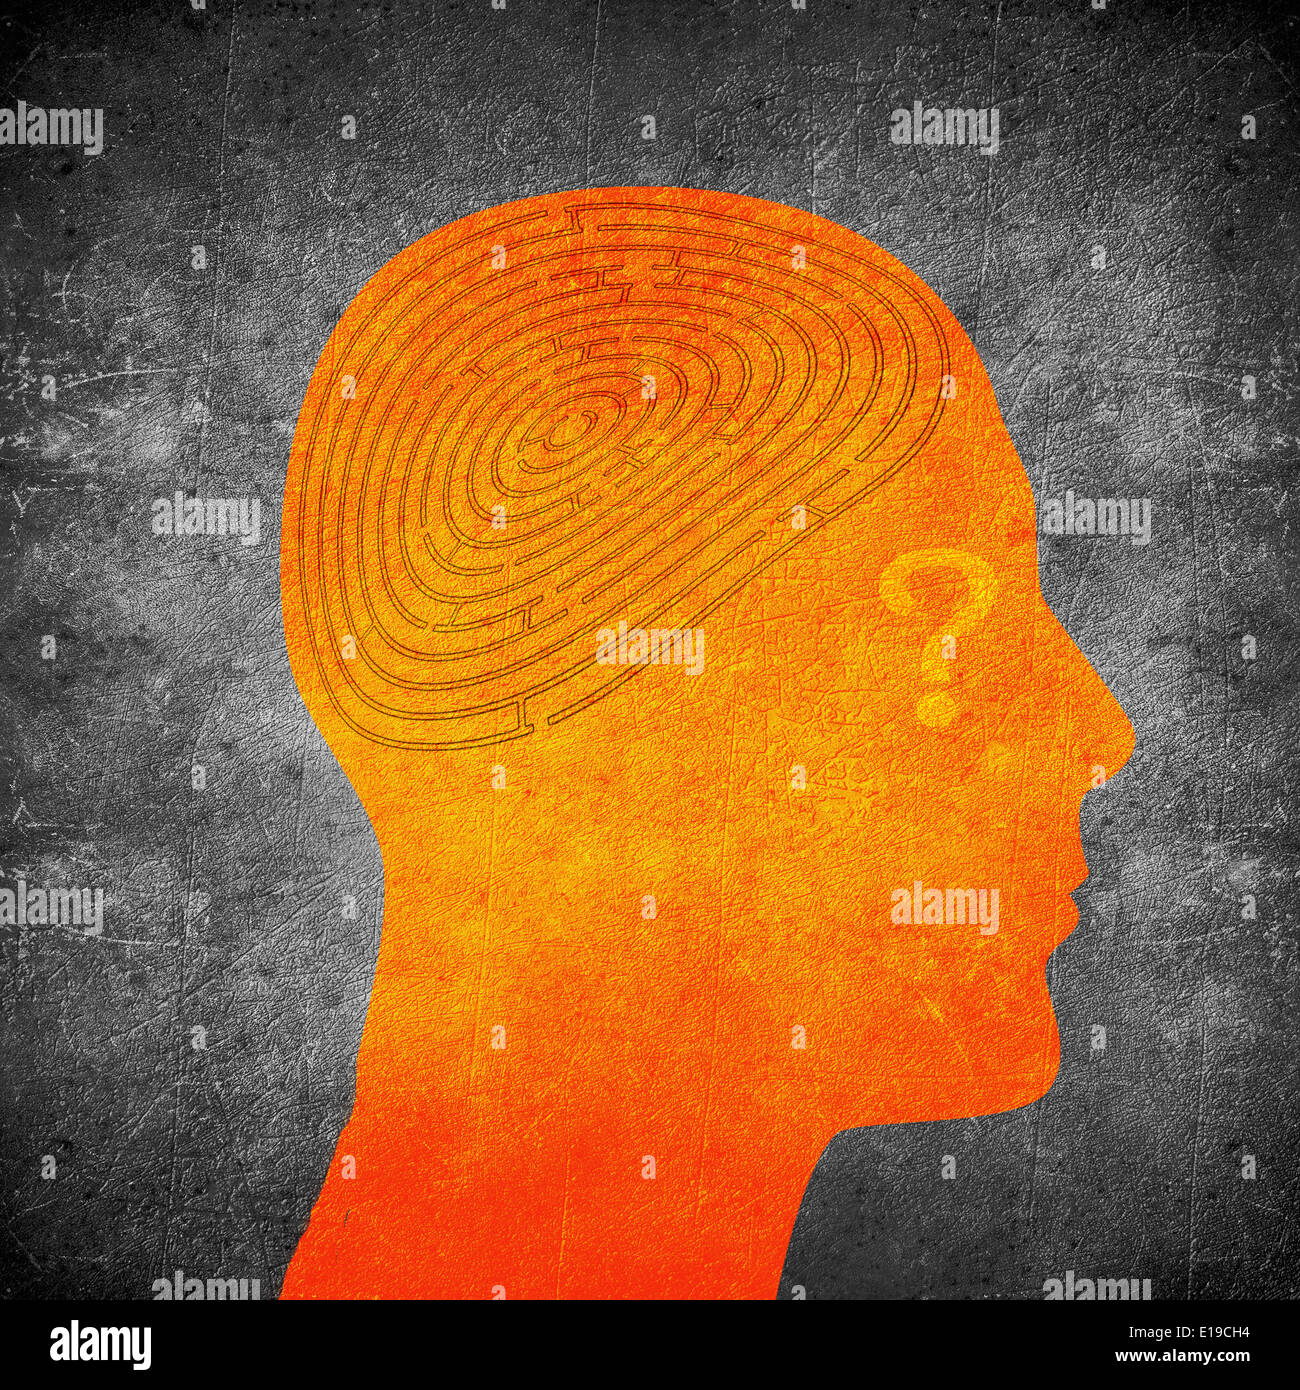 orange human head with labyrinth brain - Stock Image